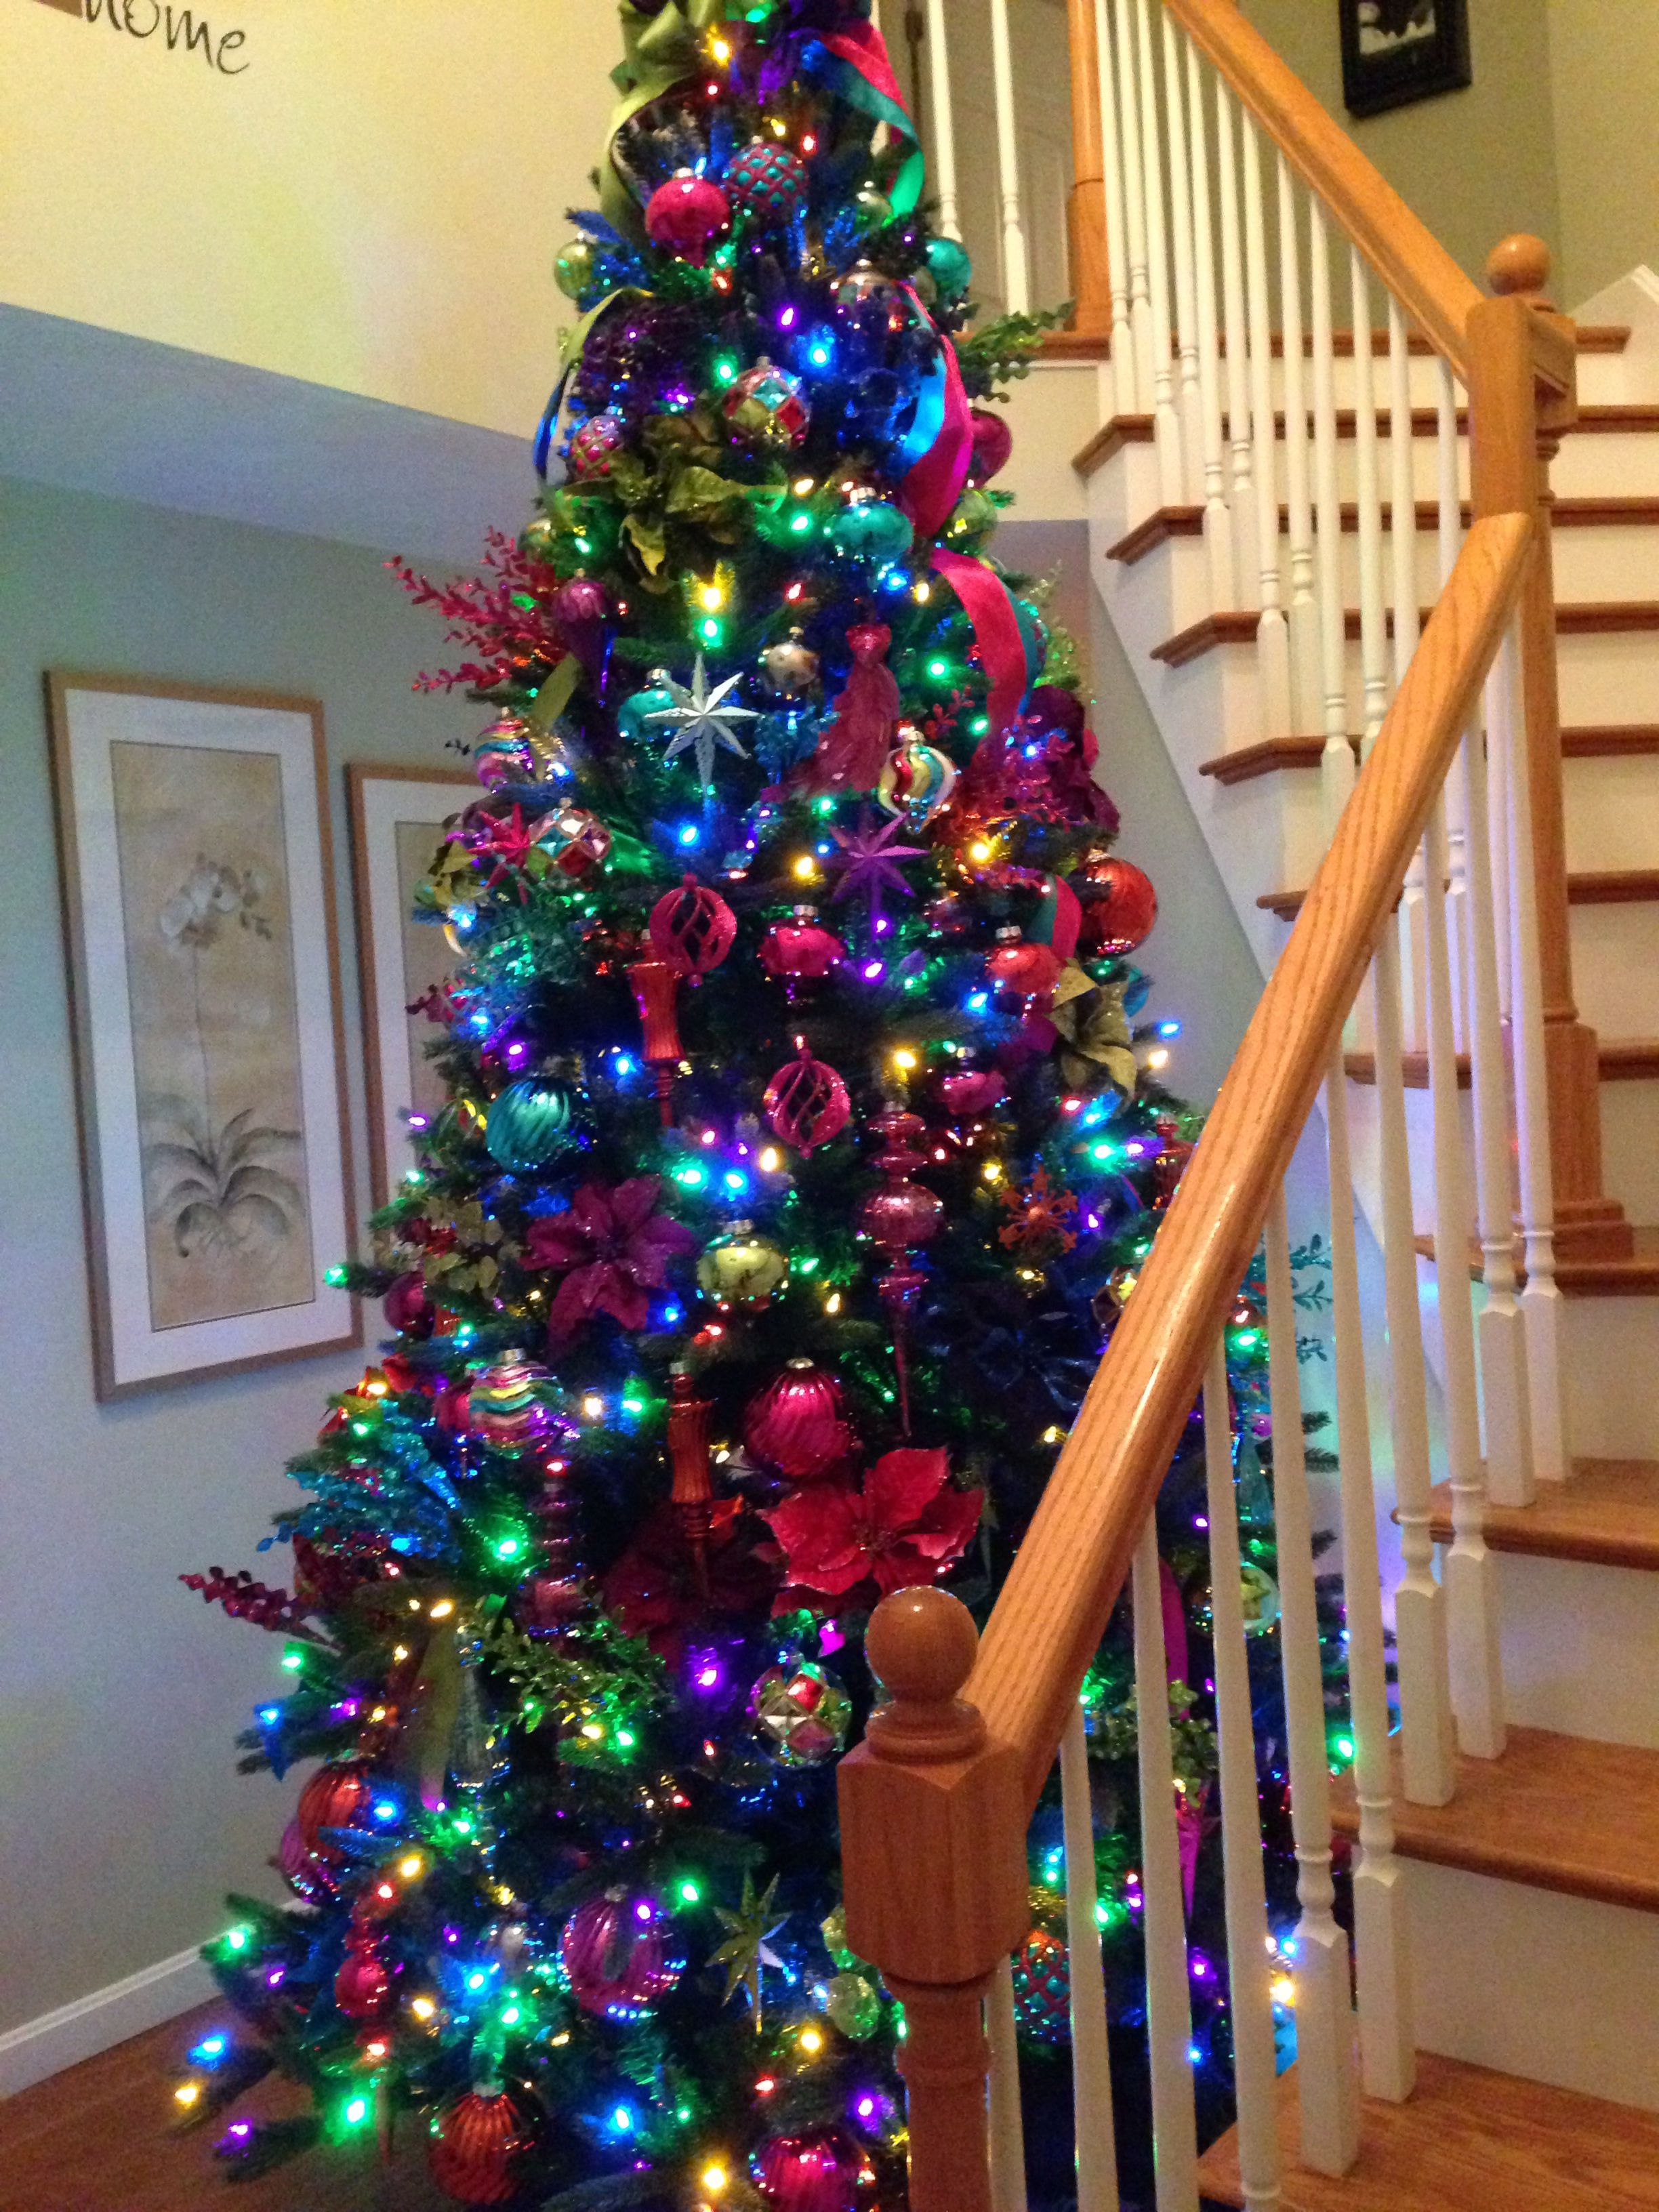 Xmas Decoration Ideas For Living Room: 40+ Best Christmas Tree Decor Ideas & Inspirations For